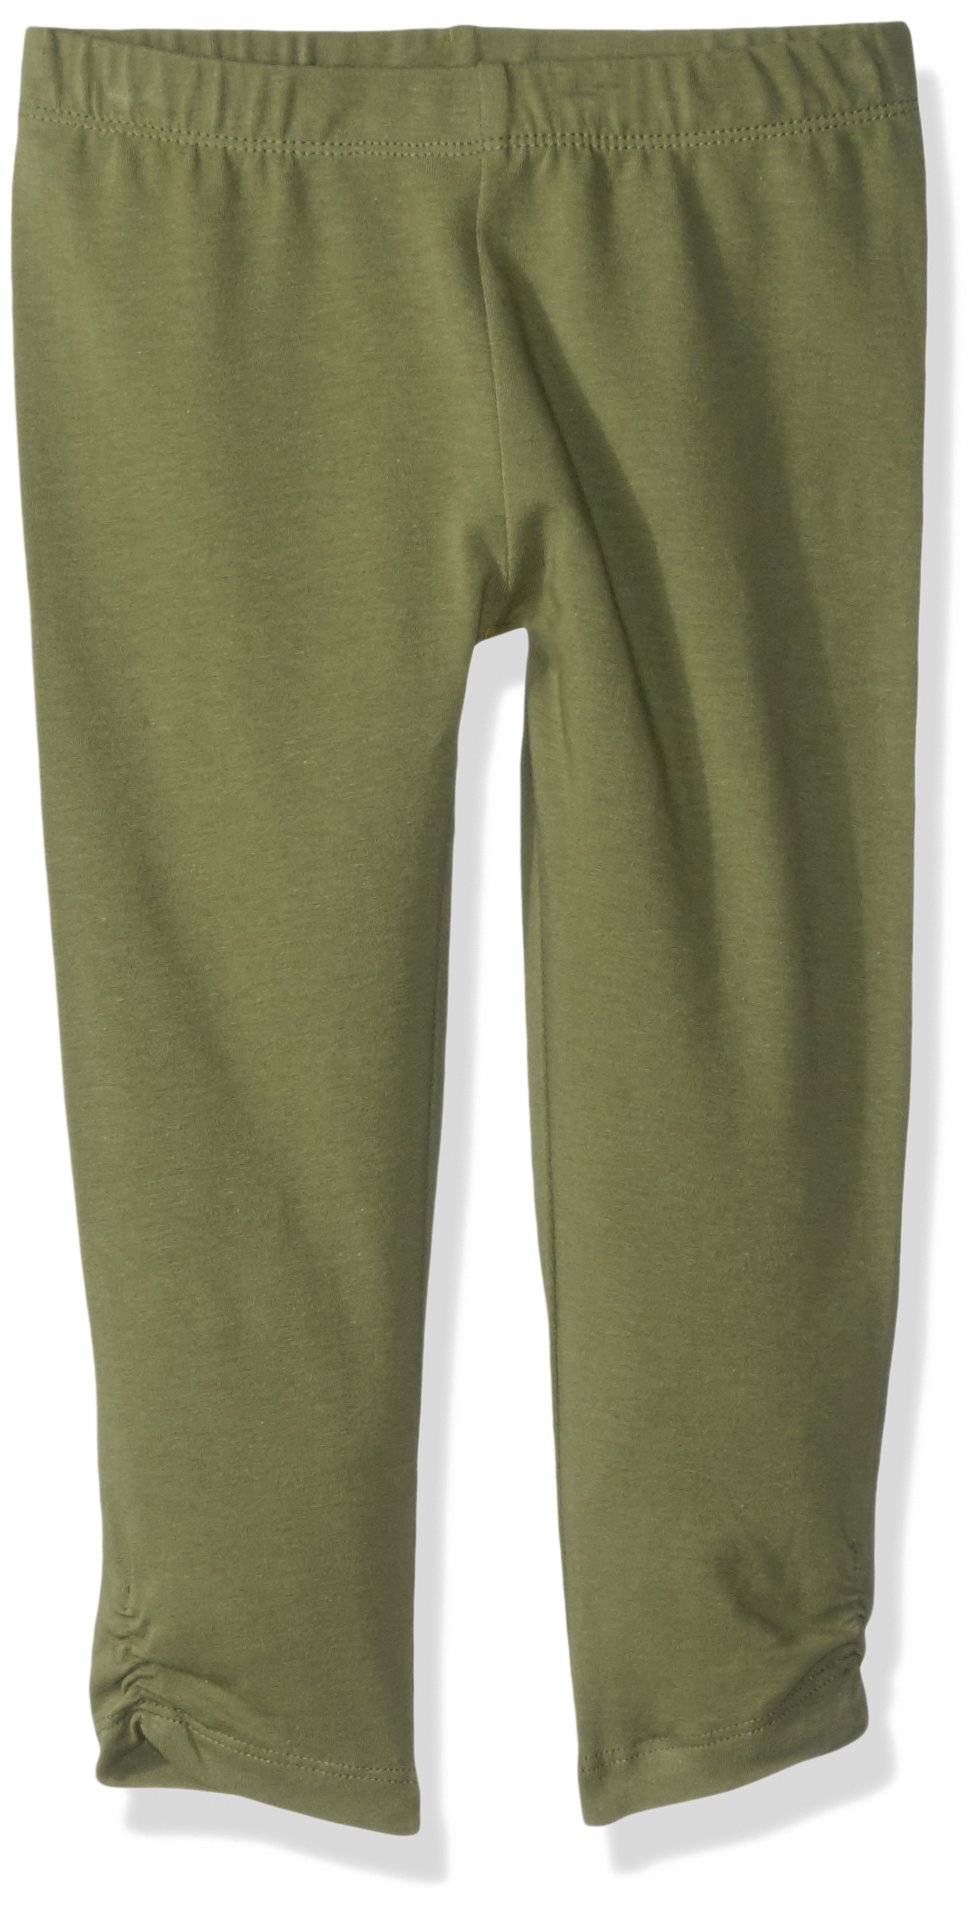 Gymboree Big Girls' Side Cinched Capri Legging, Oilve Solid, XS by Gymboree (Image #1)